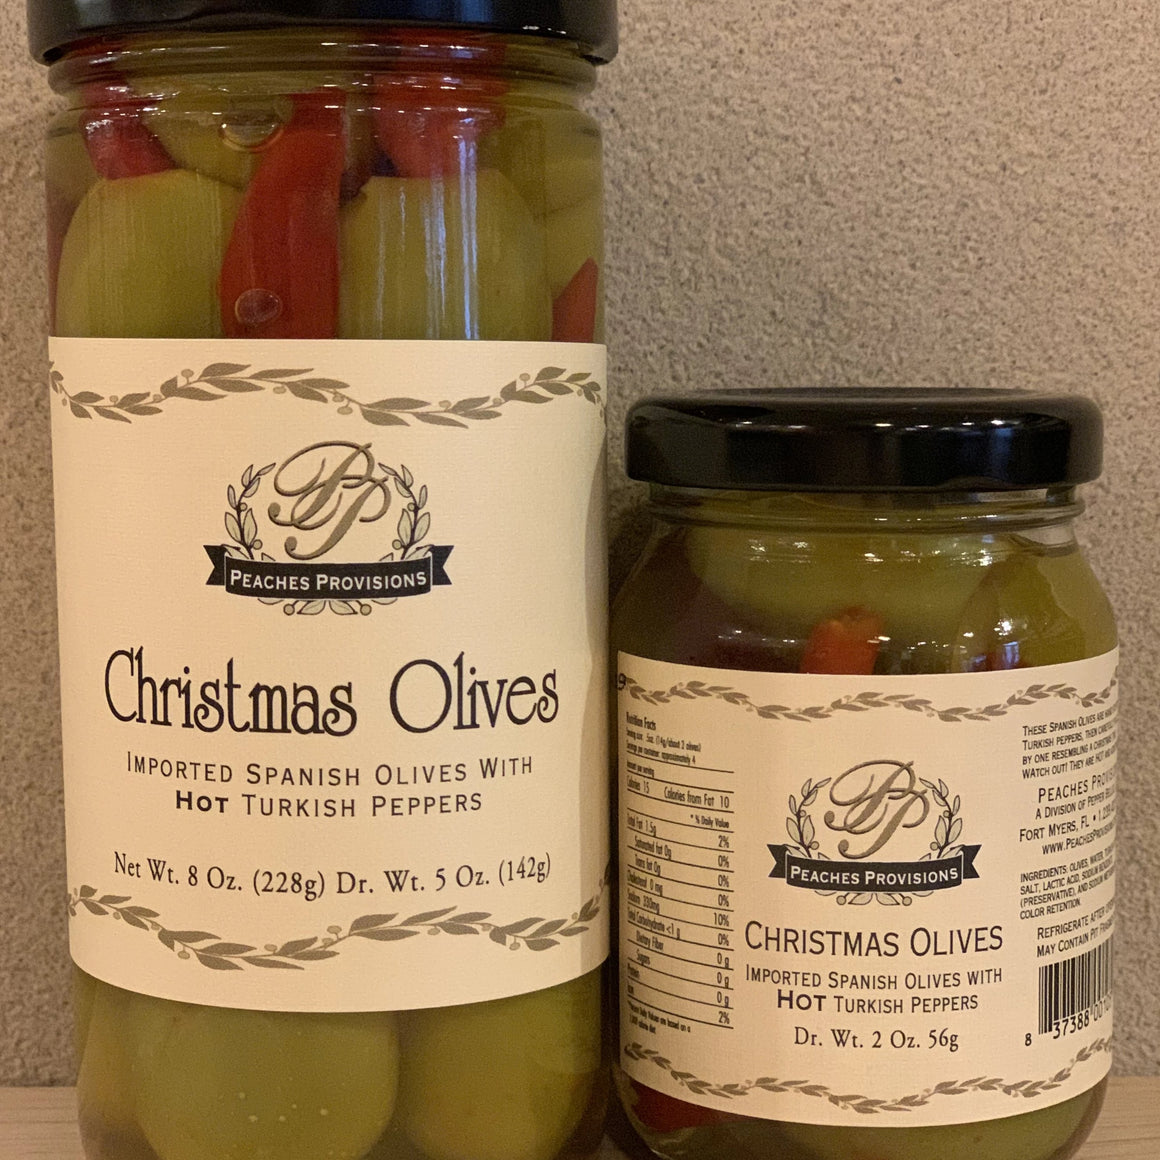 Christmas Olives